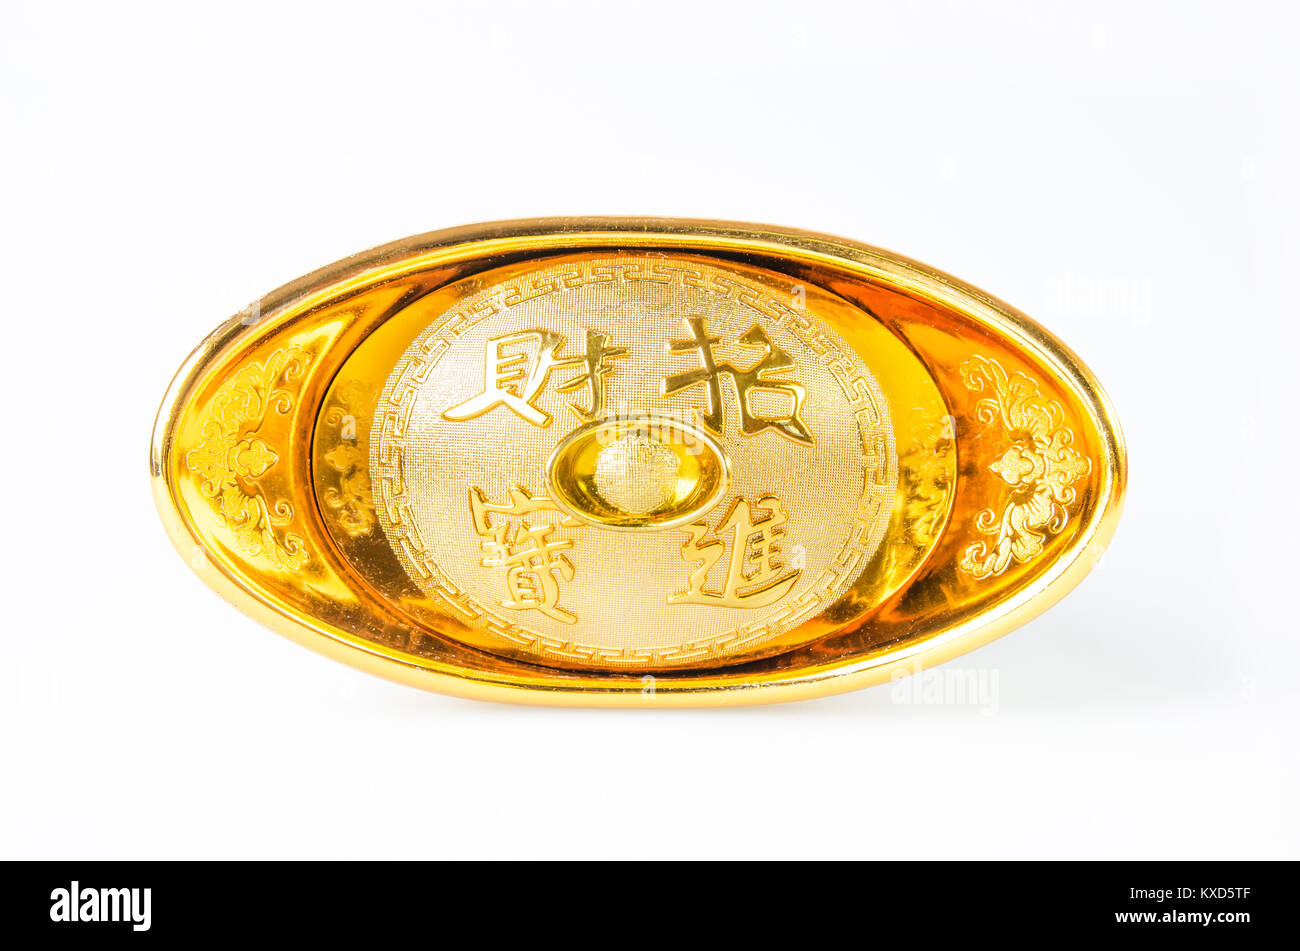 Chinese gold ingot (Foreign text means bring in wealth and treasure) isolated on white background. - Stock Image